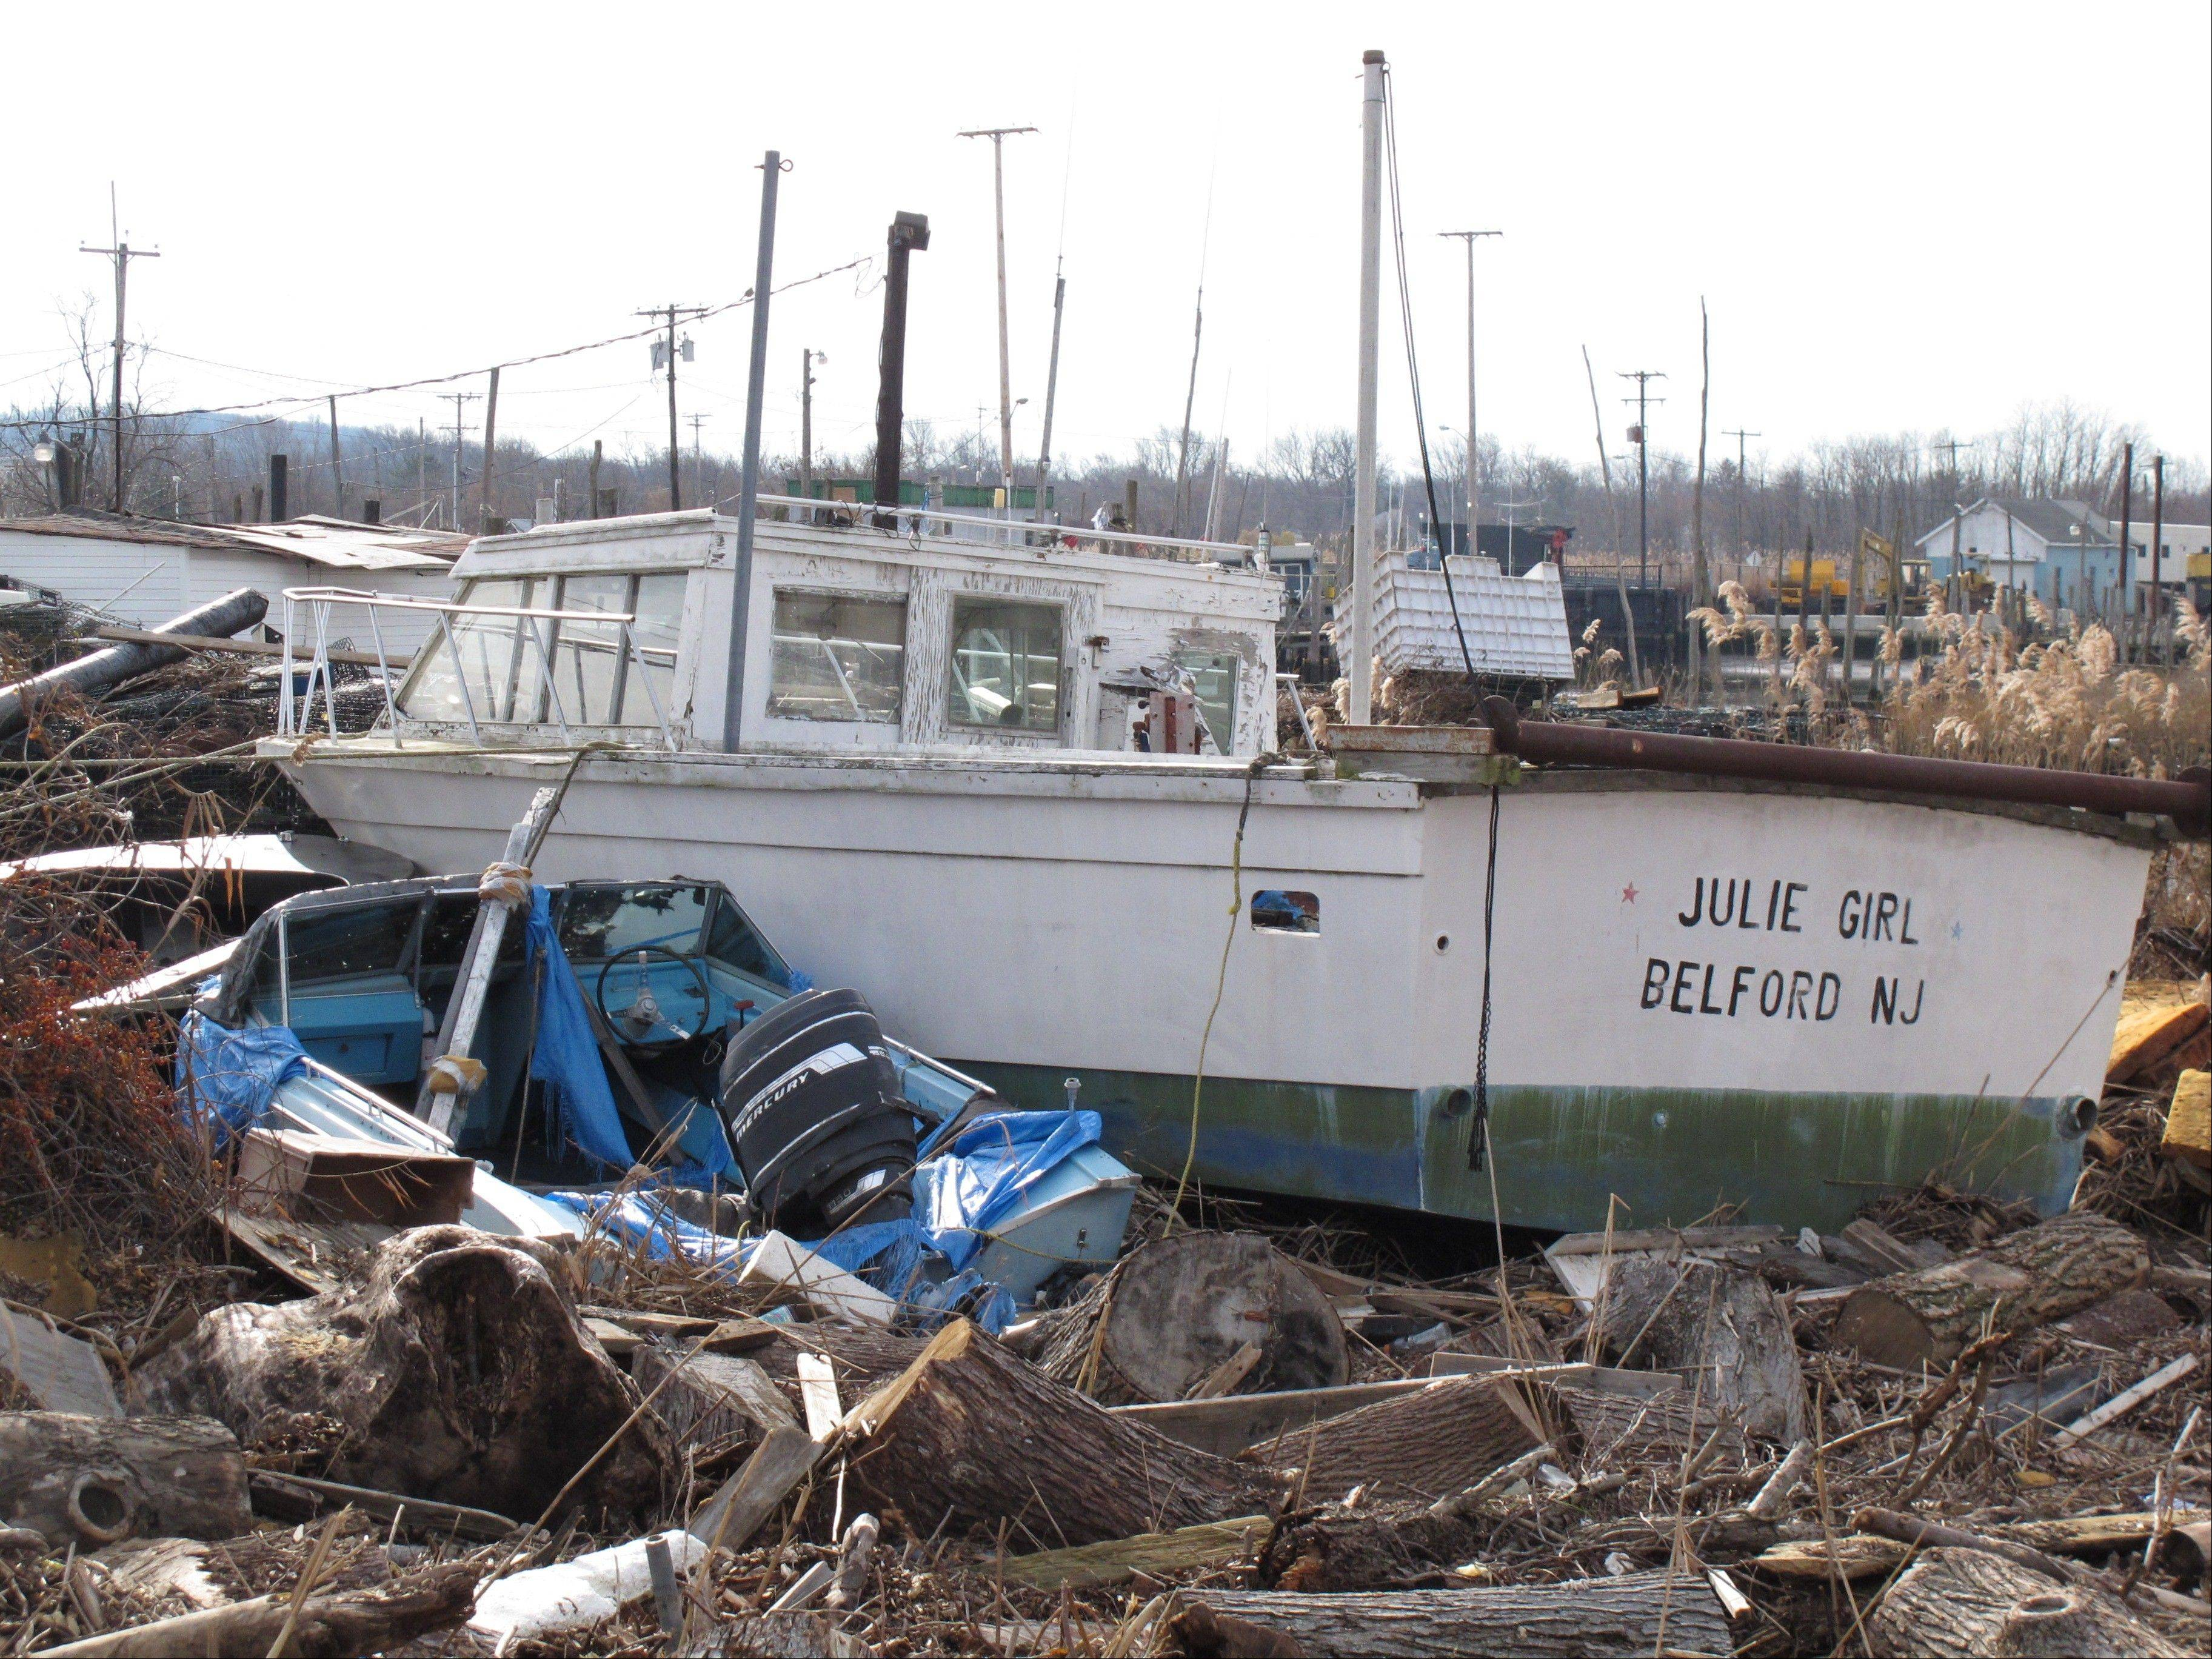 Fishing boats lie smashed against one another from Superstorm Sandy at the Belford fishing port in Middletown N.J.